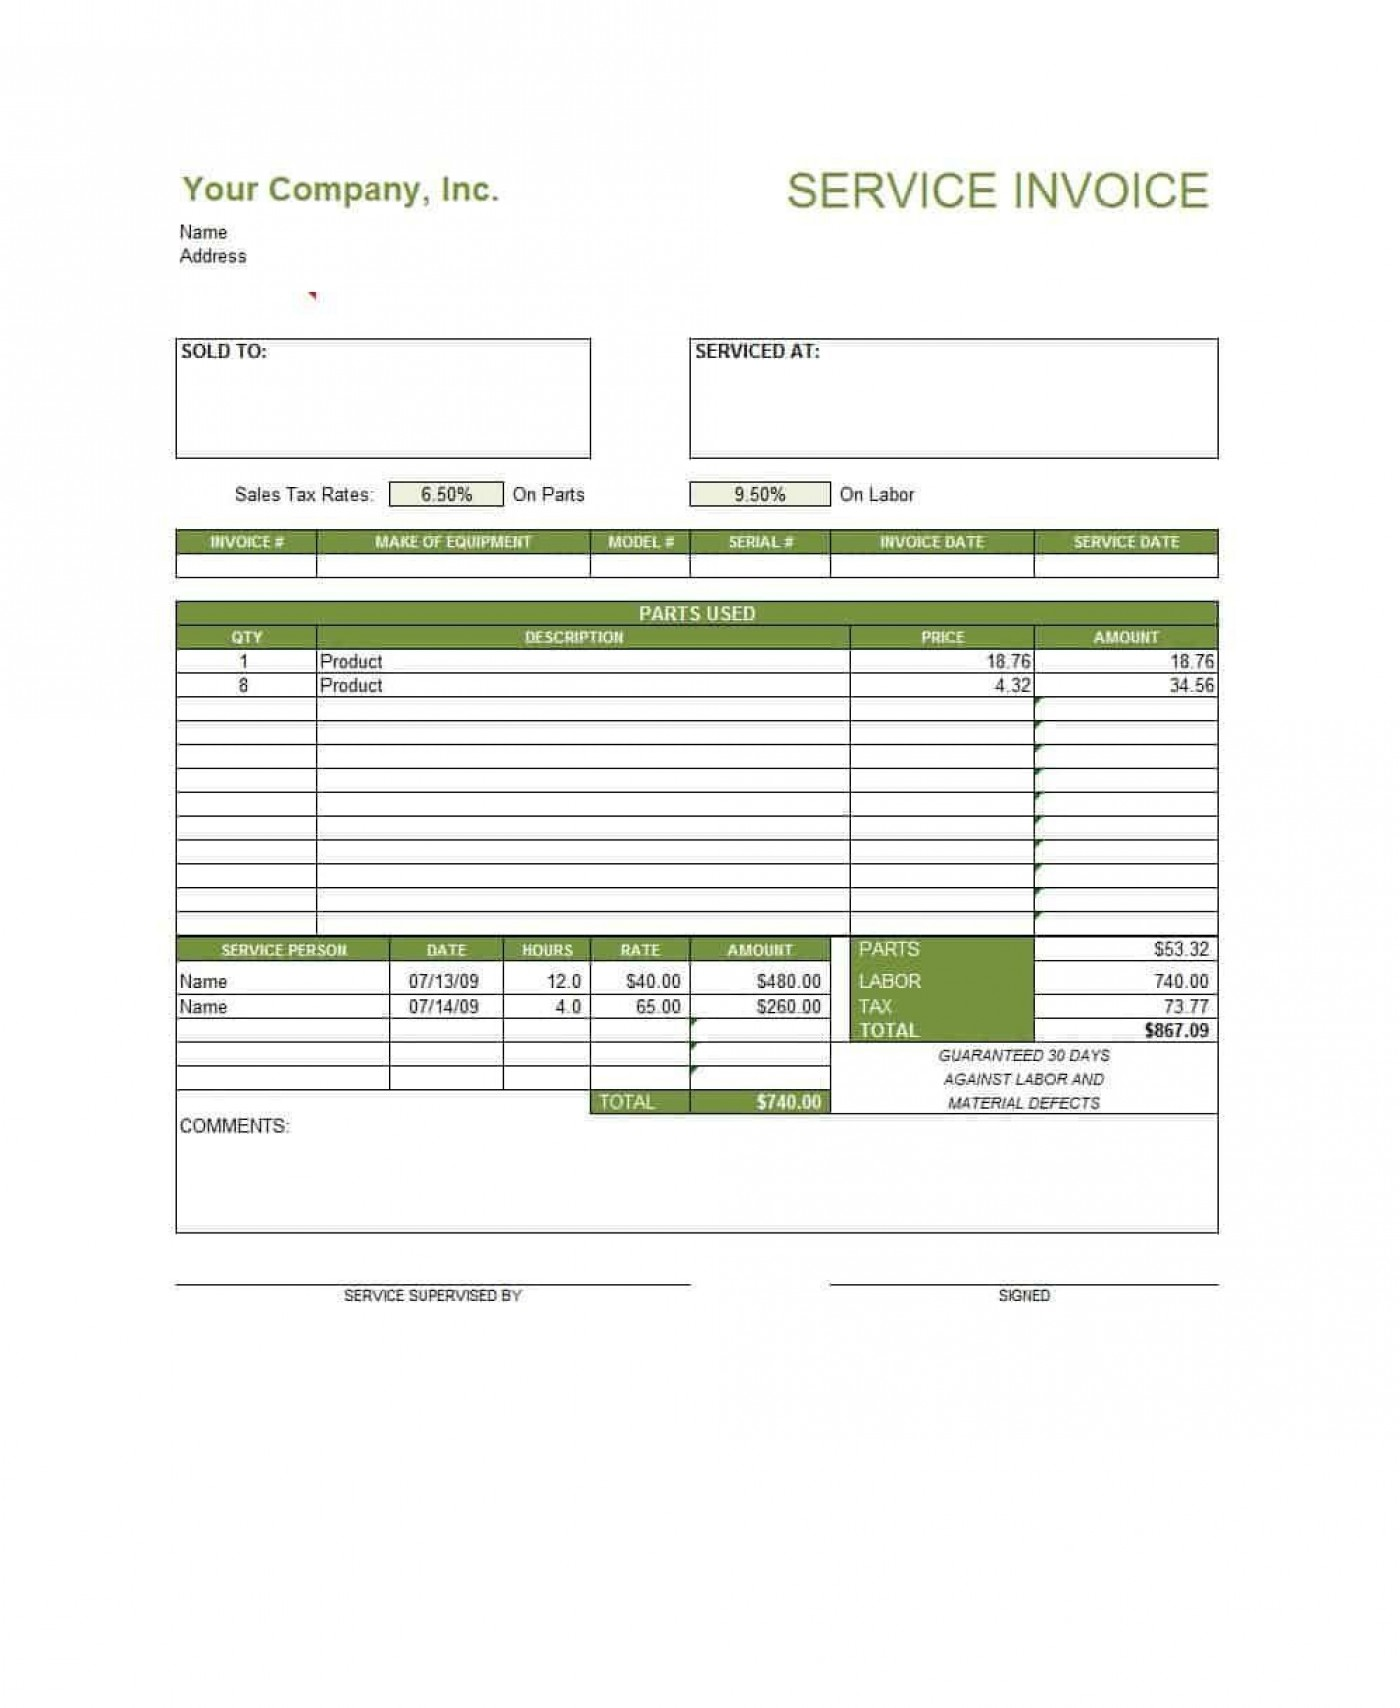 003 Excellent Service Invoice Template Free Highest Clarity  Rendered Word Auto Download1400